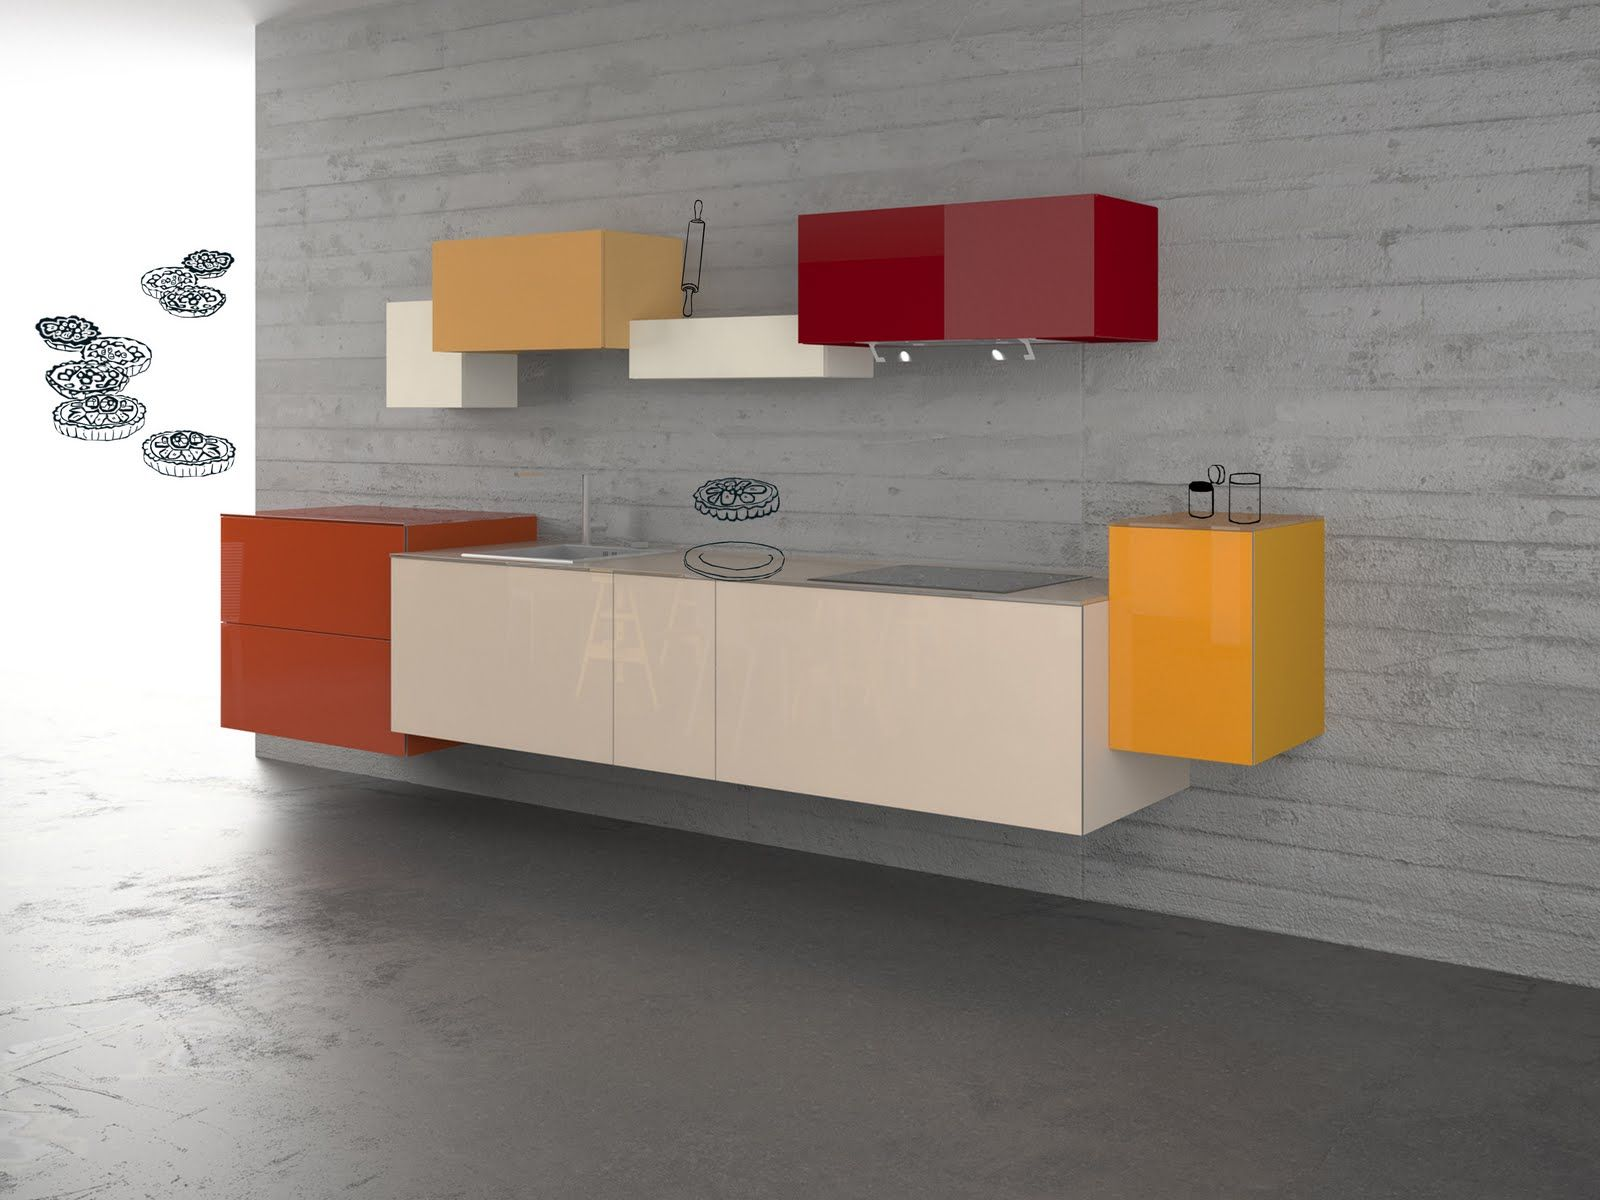 innovative kitchen designs for small spaces google search innovative kitchen designs for small spaces google search